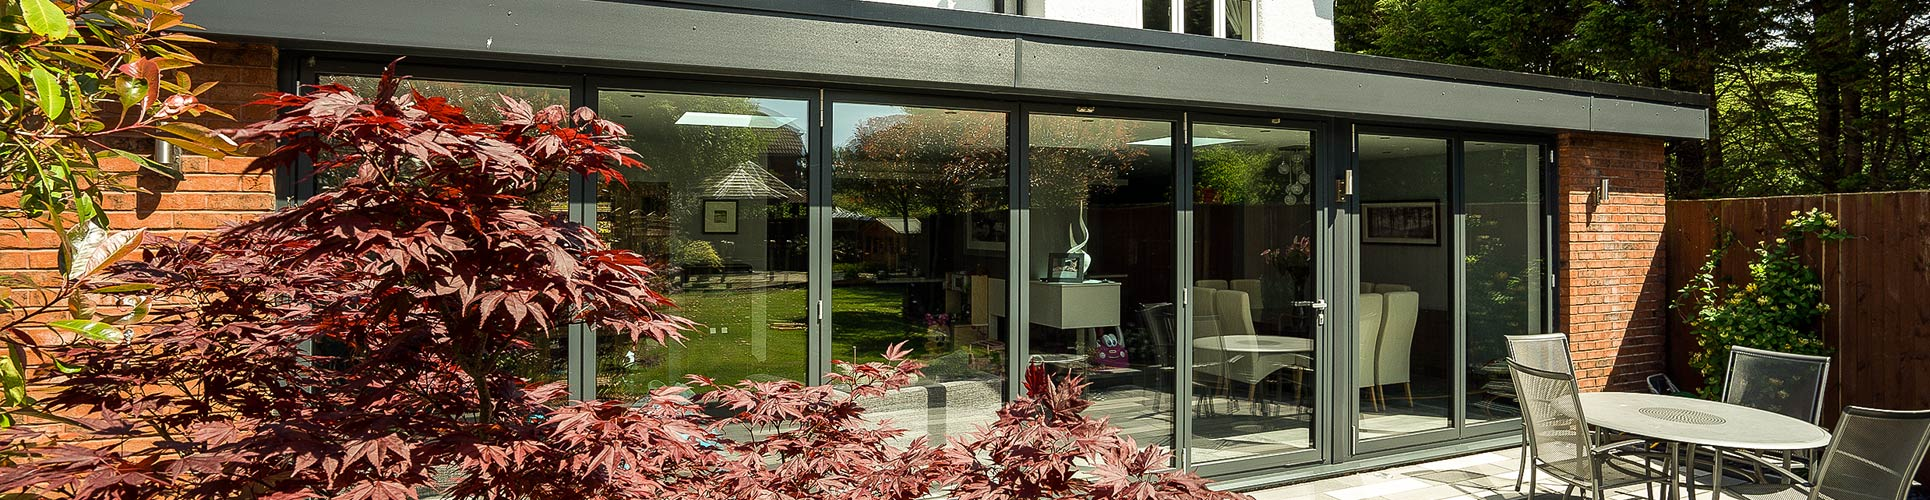 Centor bifold doors in Heswall showroom. & Centor Bifolding Doors | Centor Bifolds | John Knight Glass